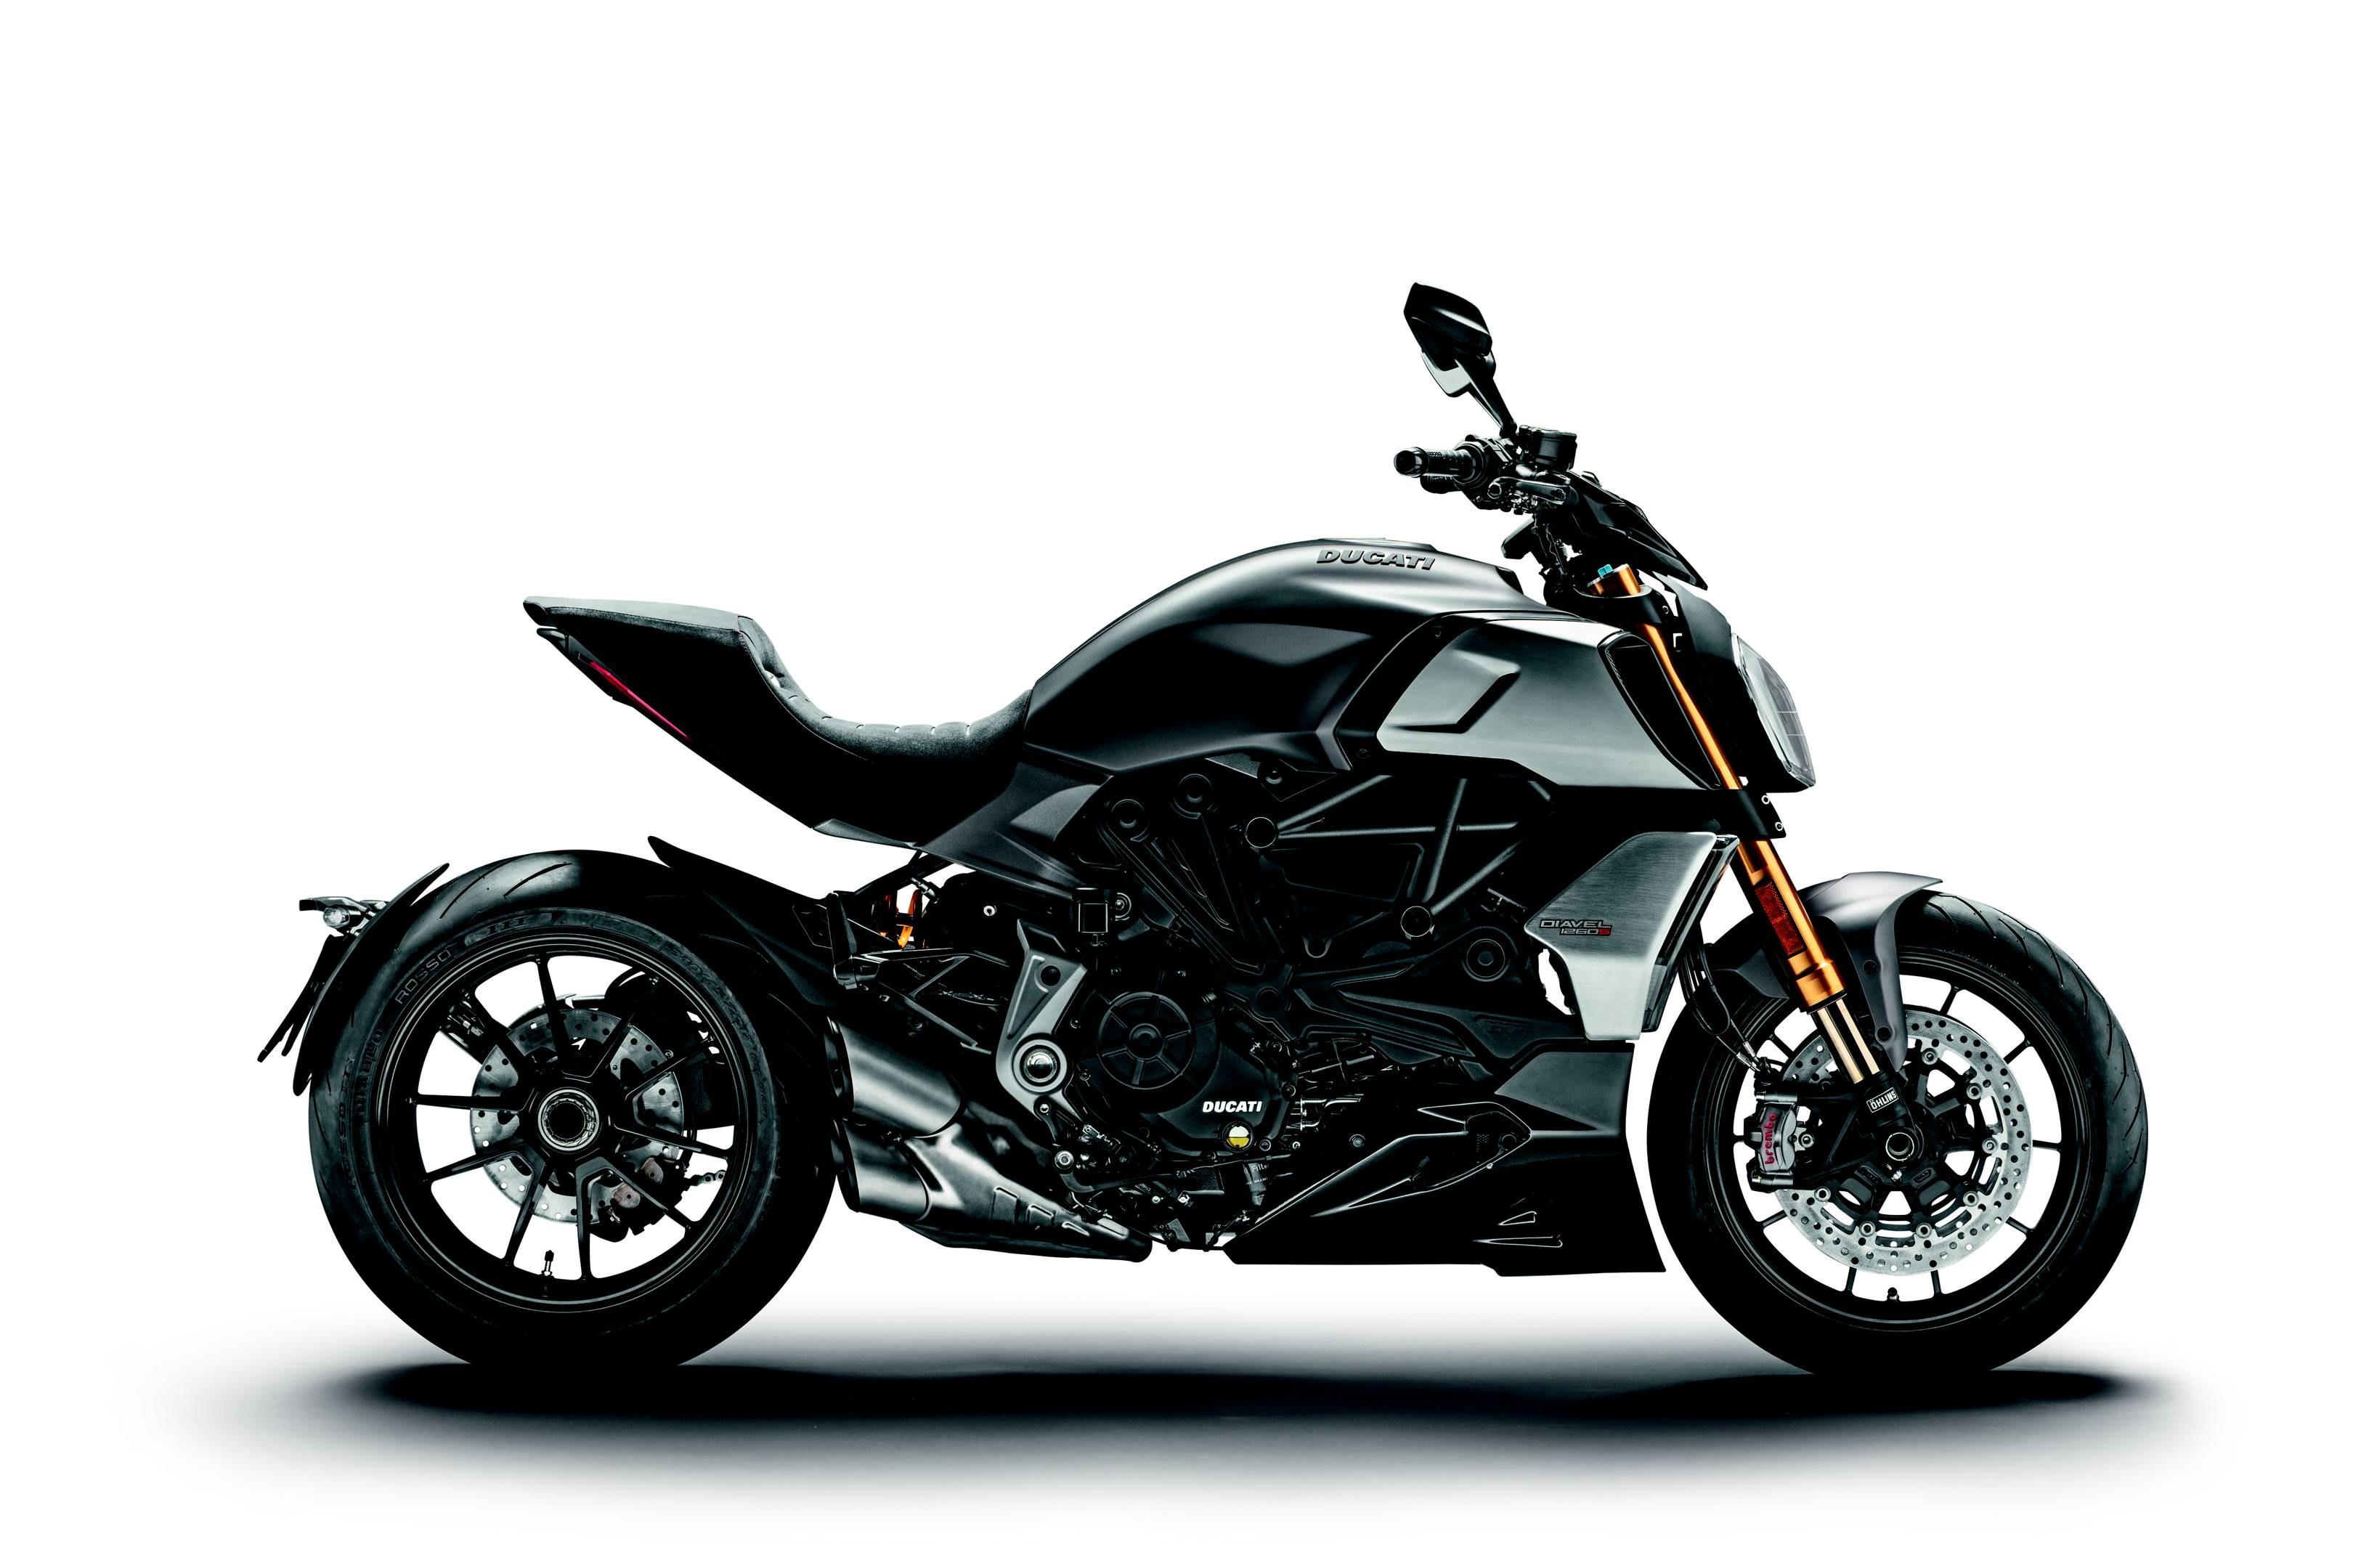 2019 Ducati Diavel 1260S Review - First Ride - Motorcycle.com